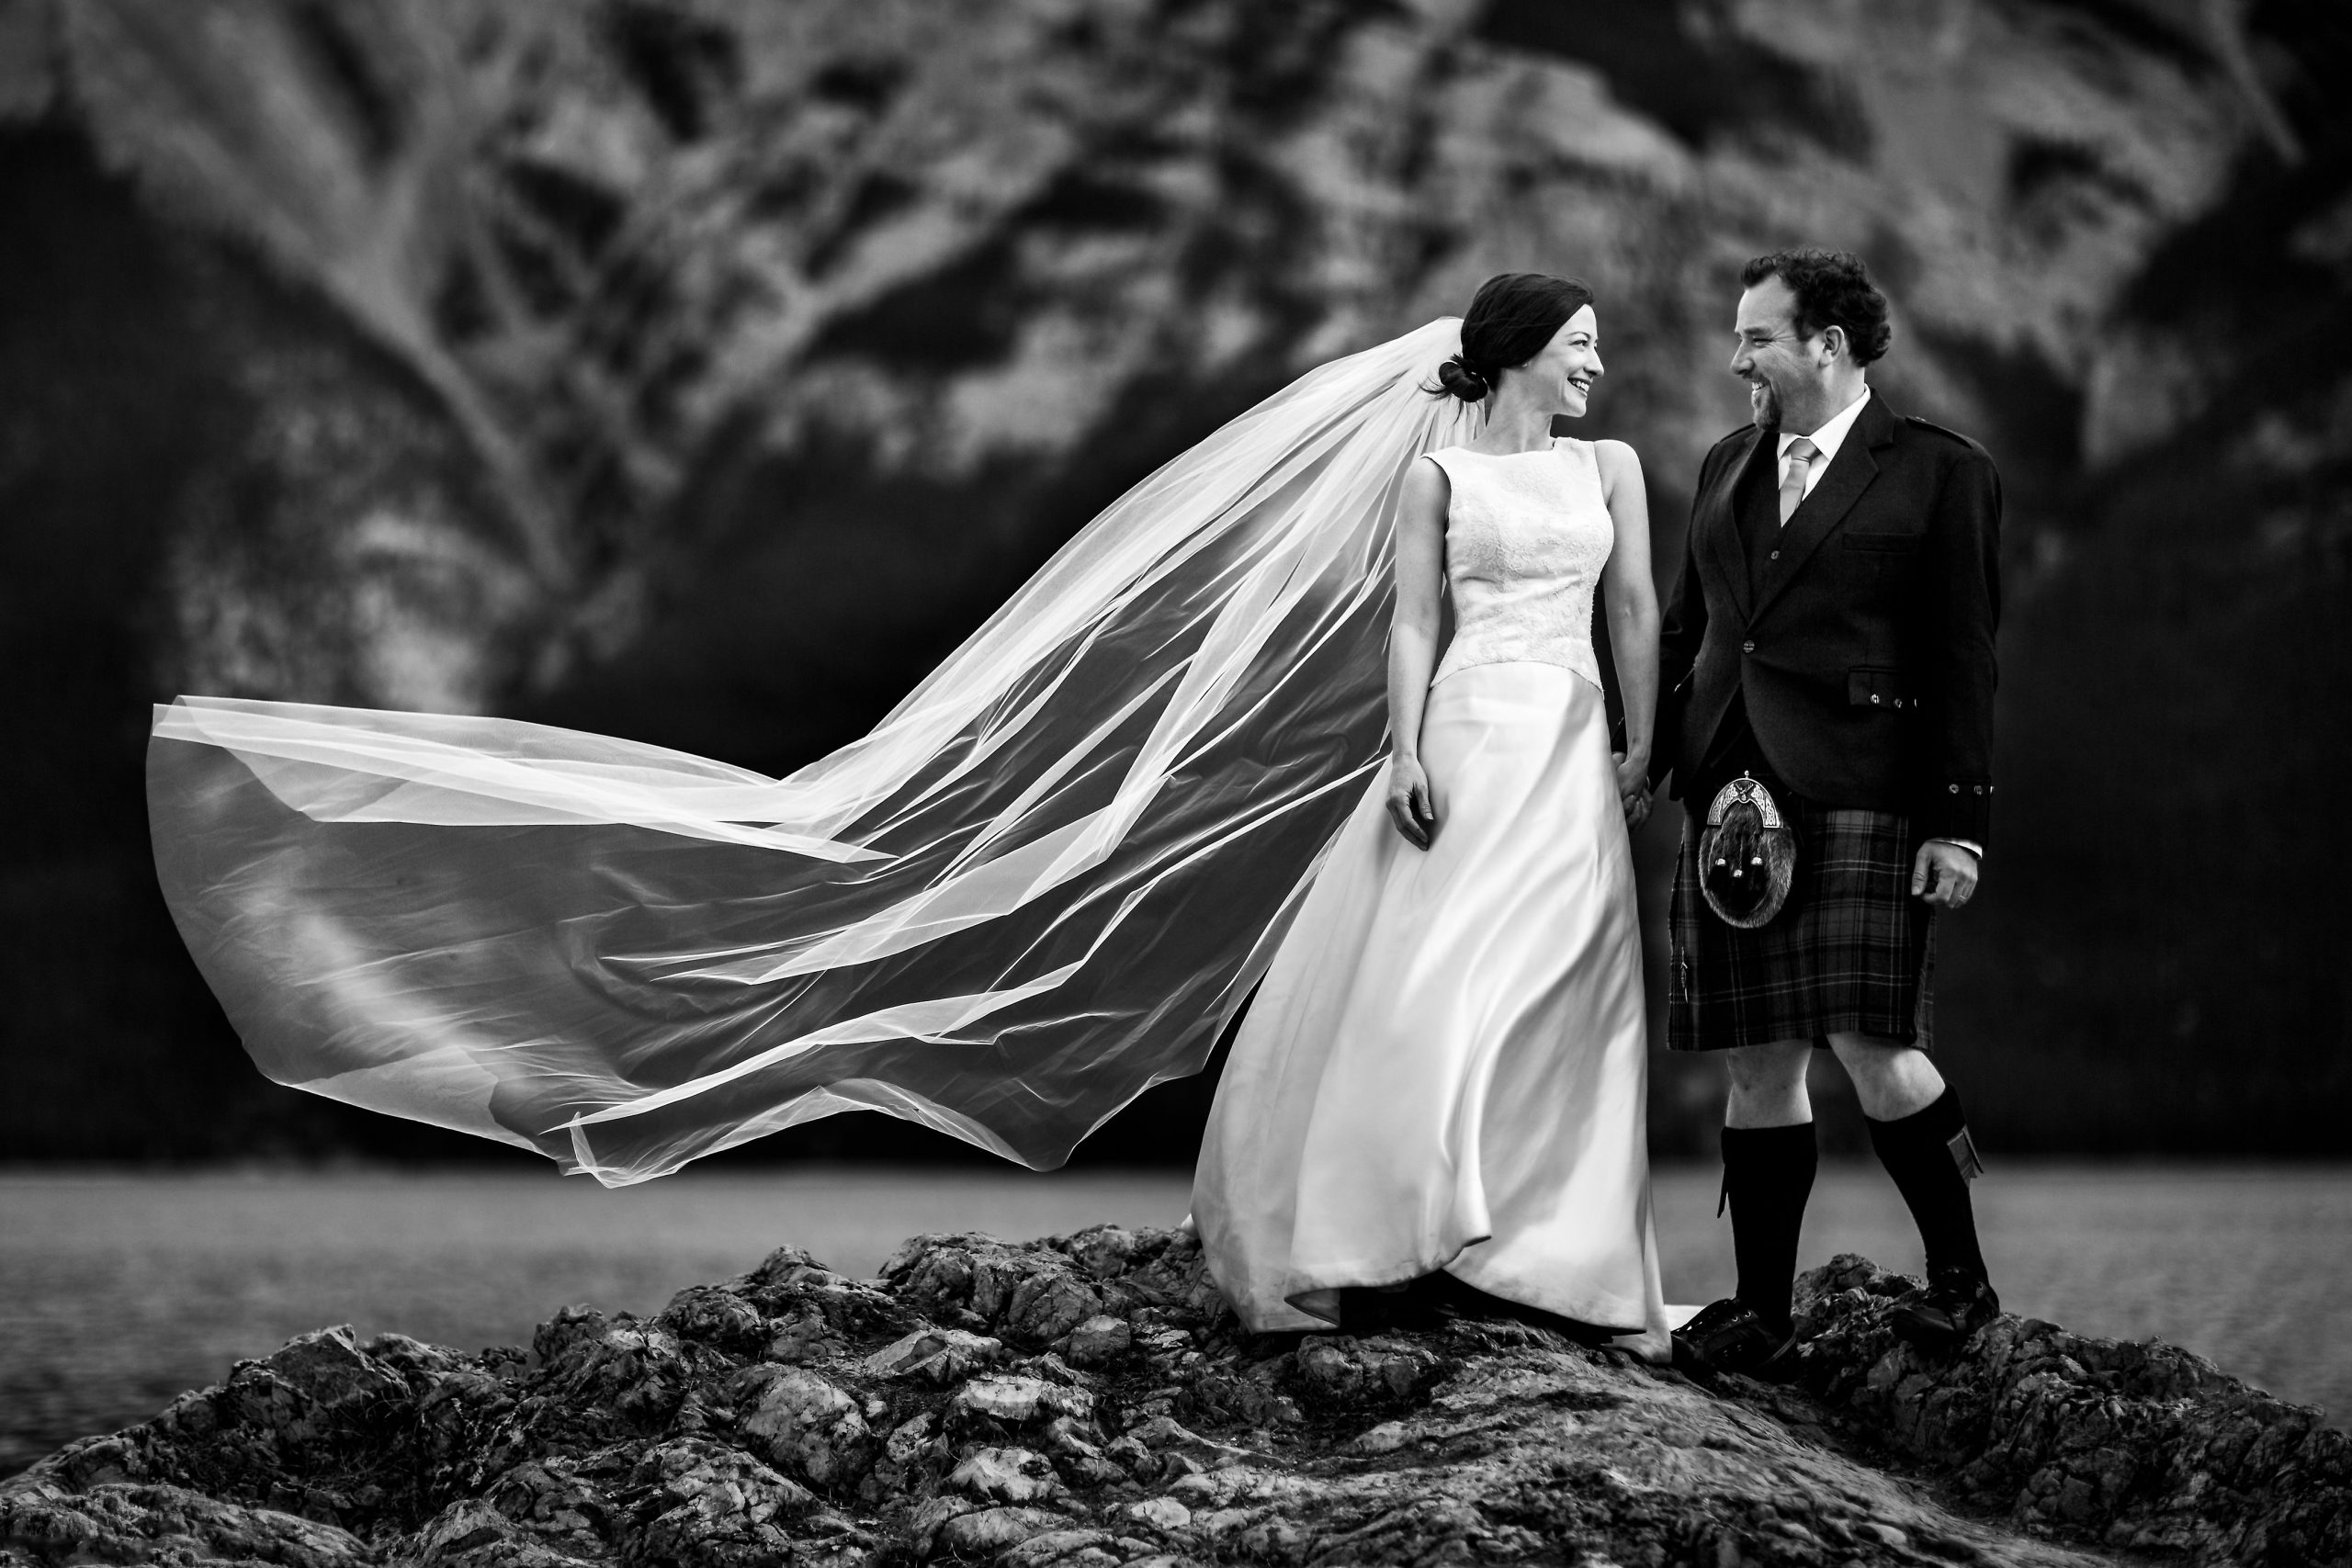 Bride with wedding dress and long veil and groom with Scottish kilt and sporran stand on rocks hand in hand in Banff